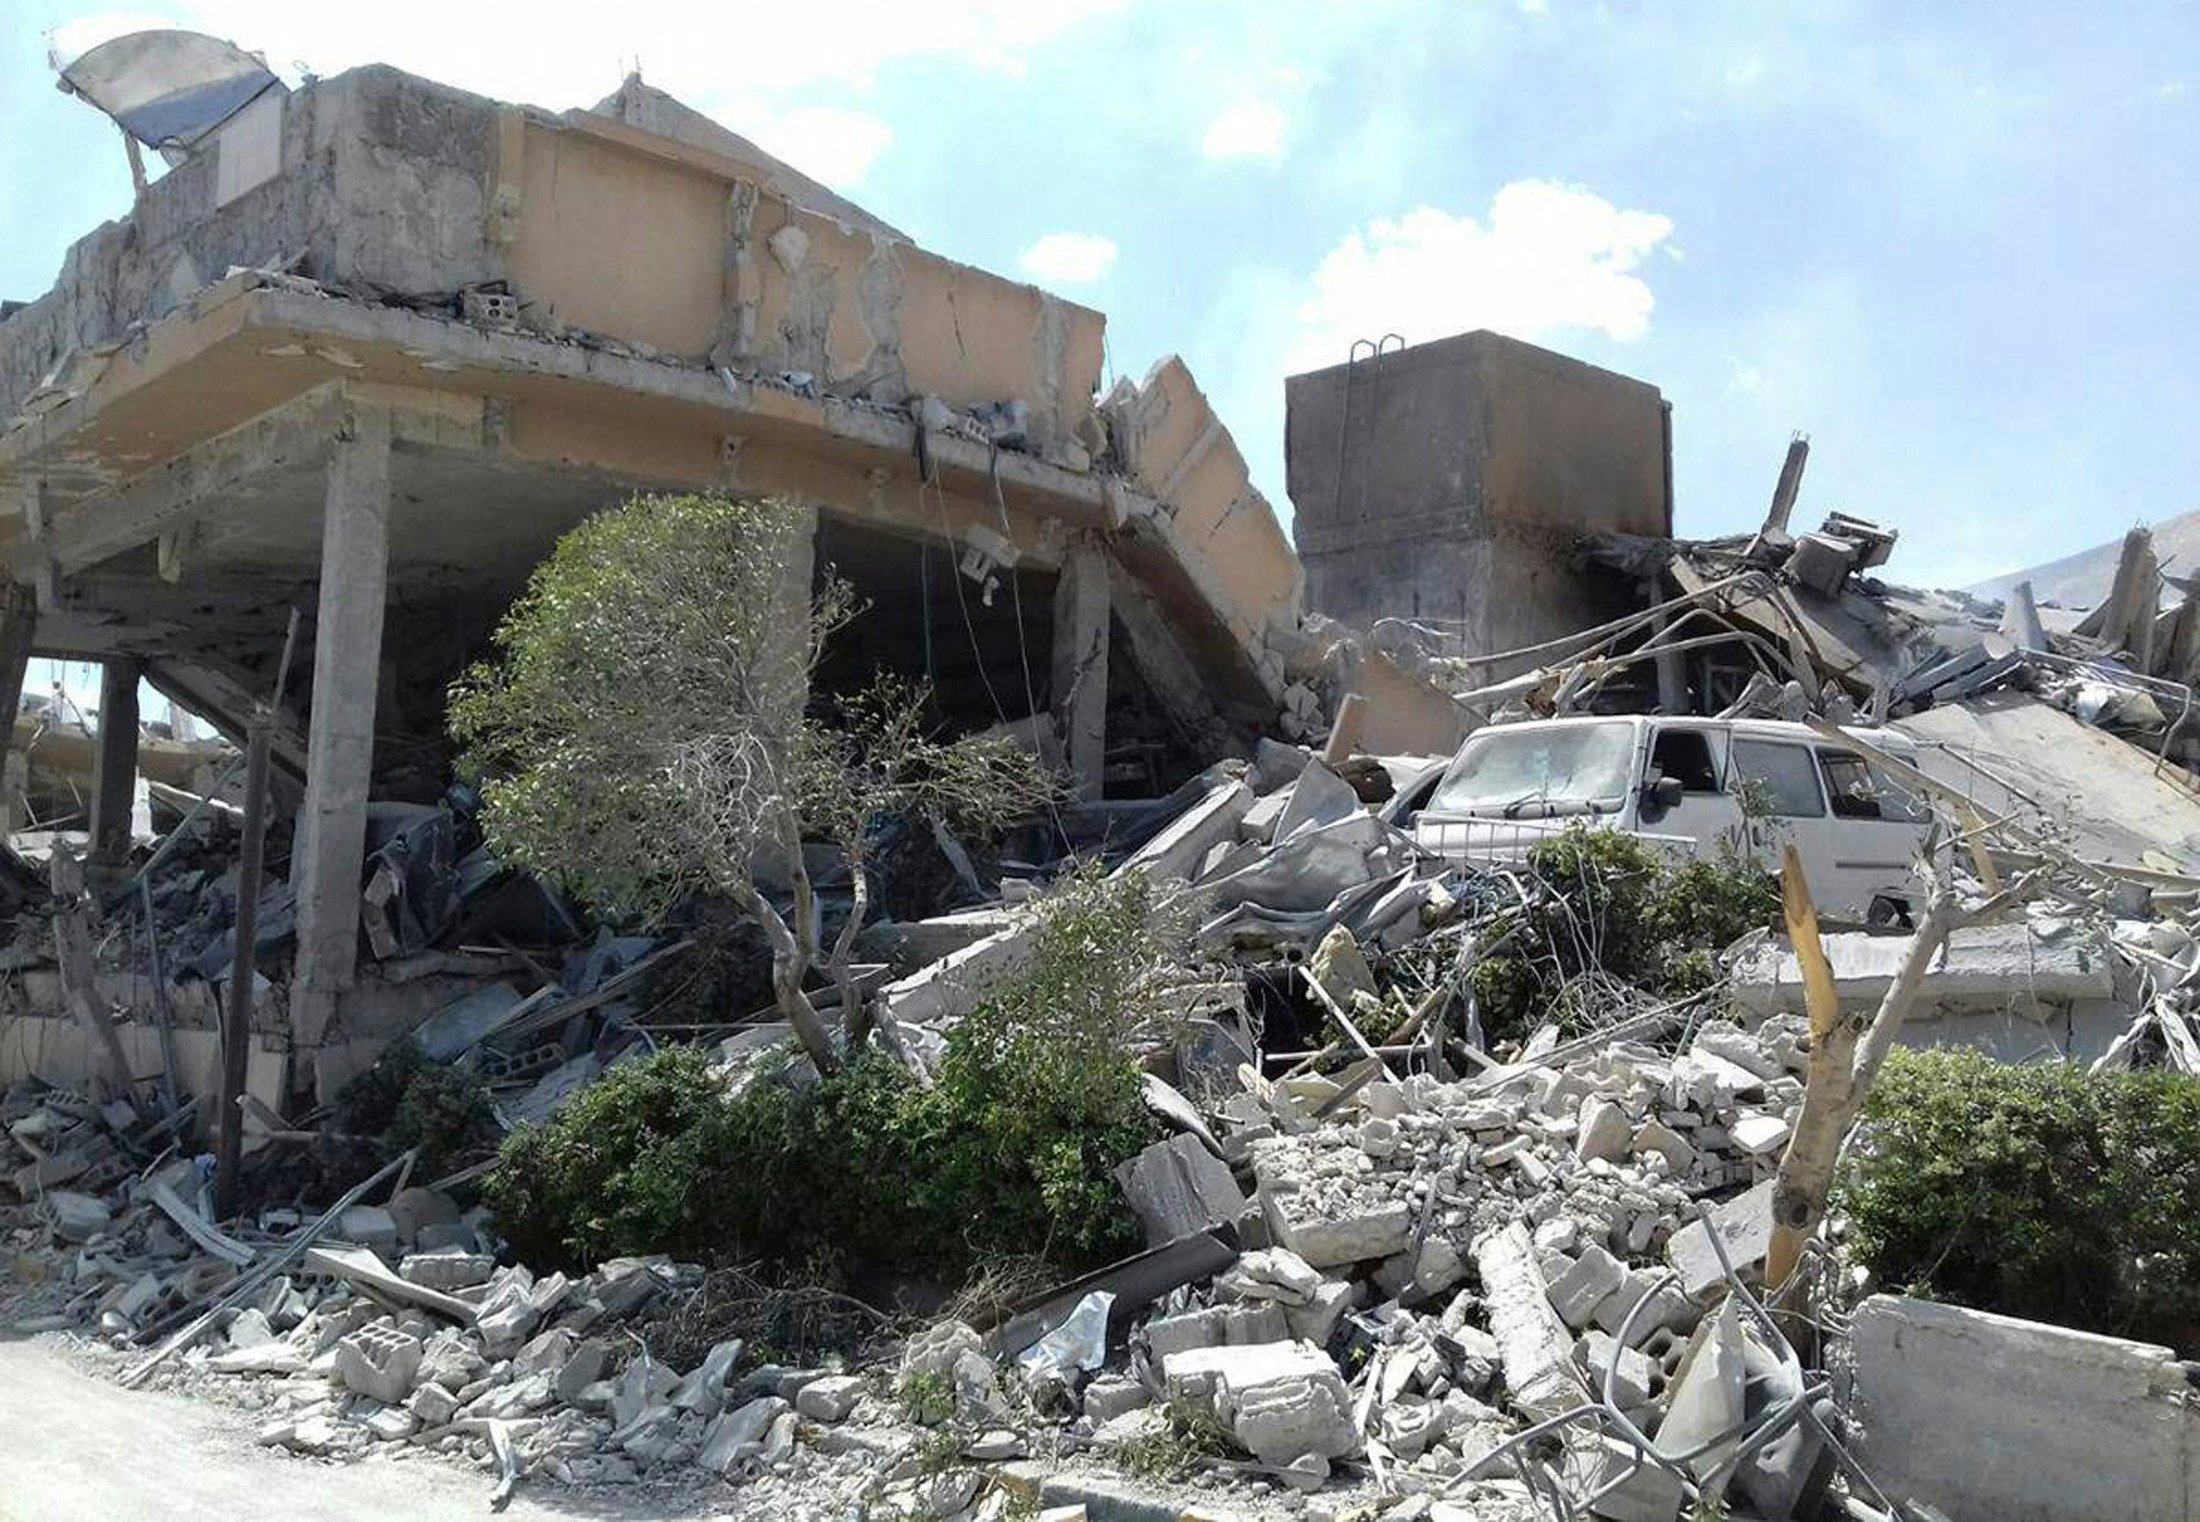 This image shows the damage to the Syrian Scientific Research Center which was attacked by U.S., British and French military strikes Friday. (Source:SANA/AP Photos)